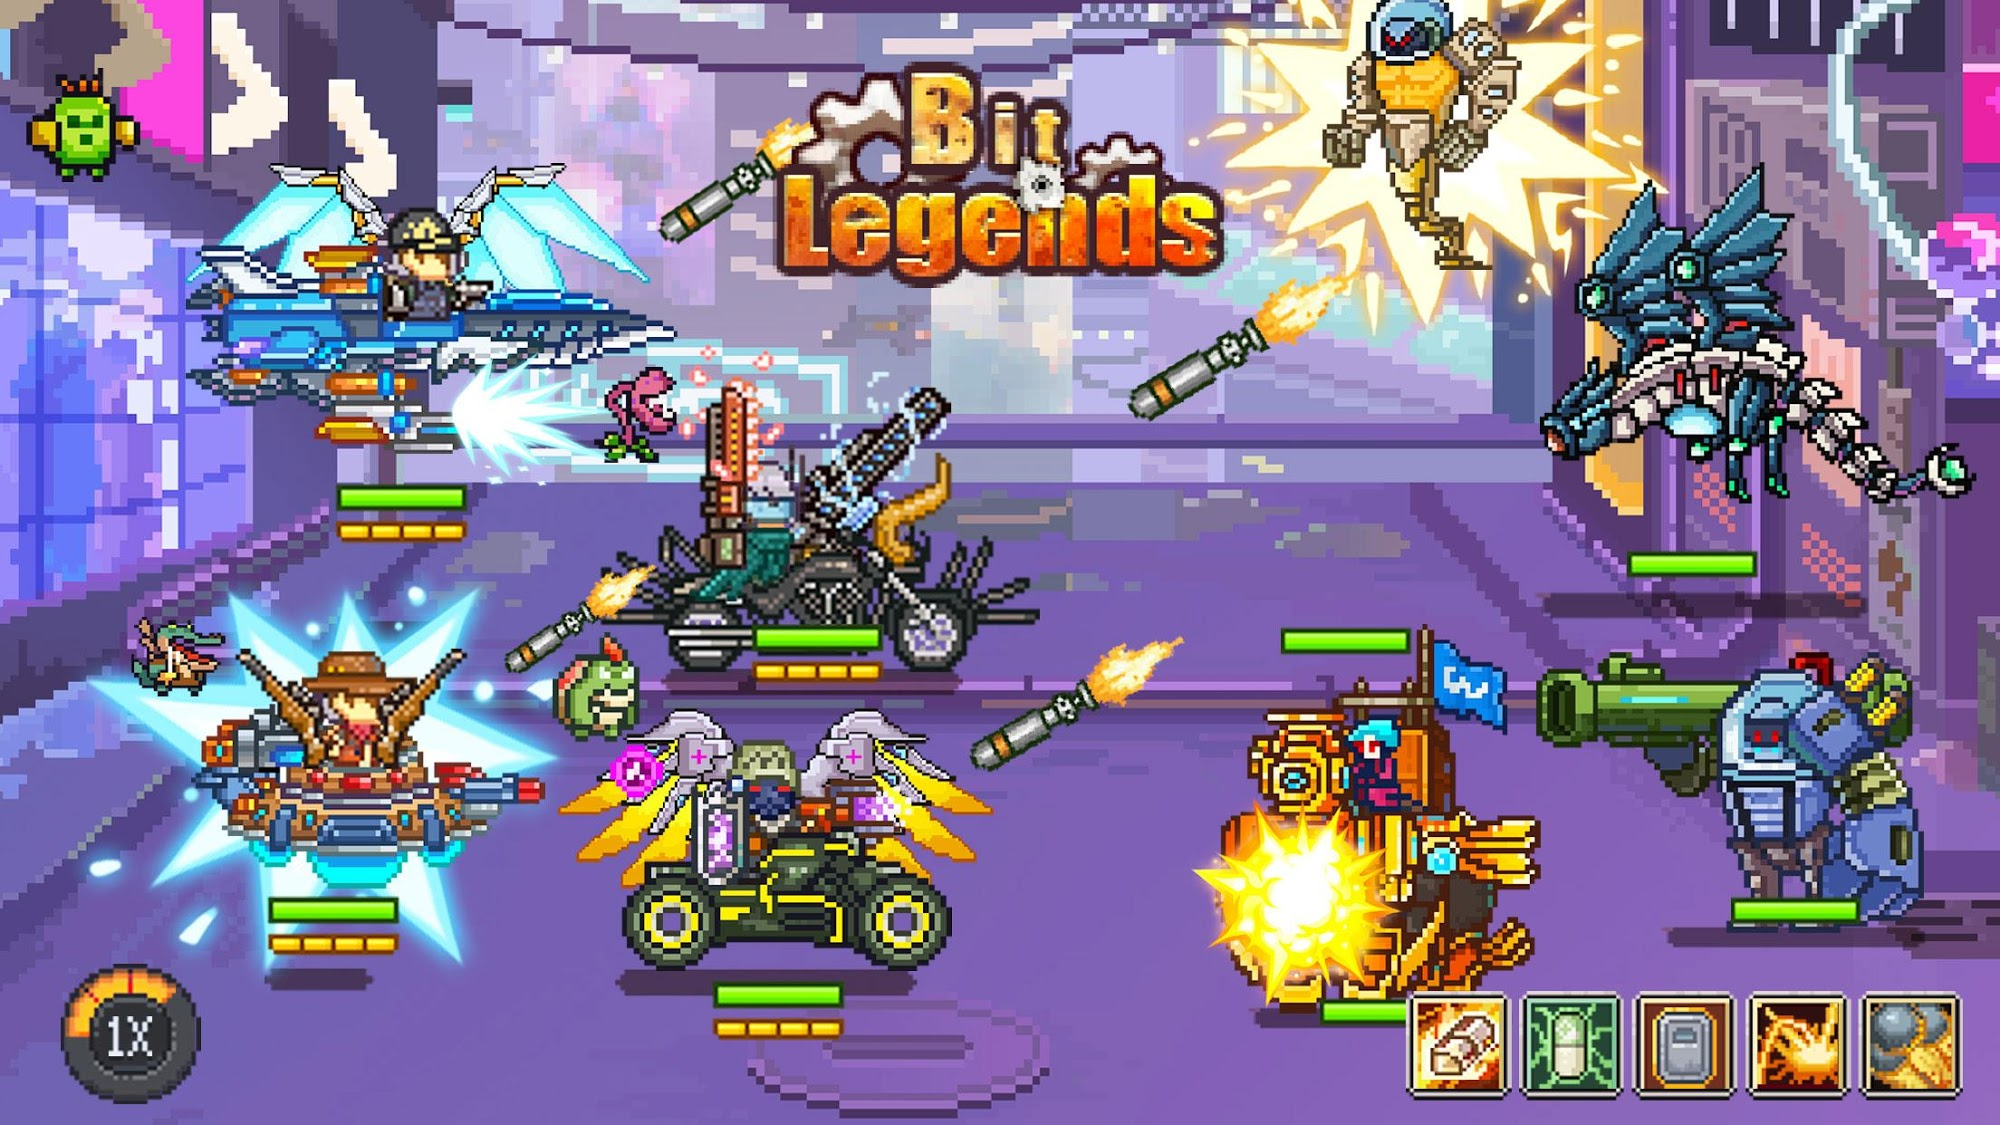 Bit Legends screenshot 1